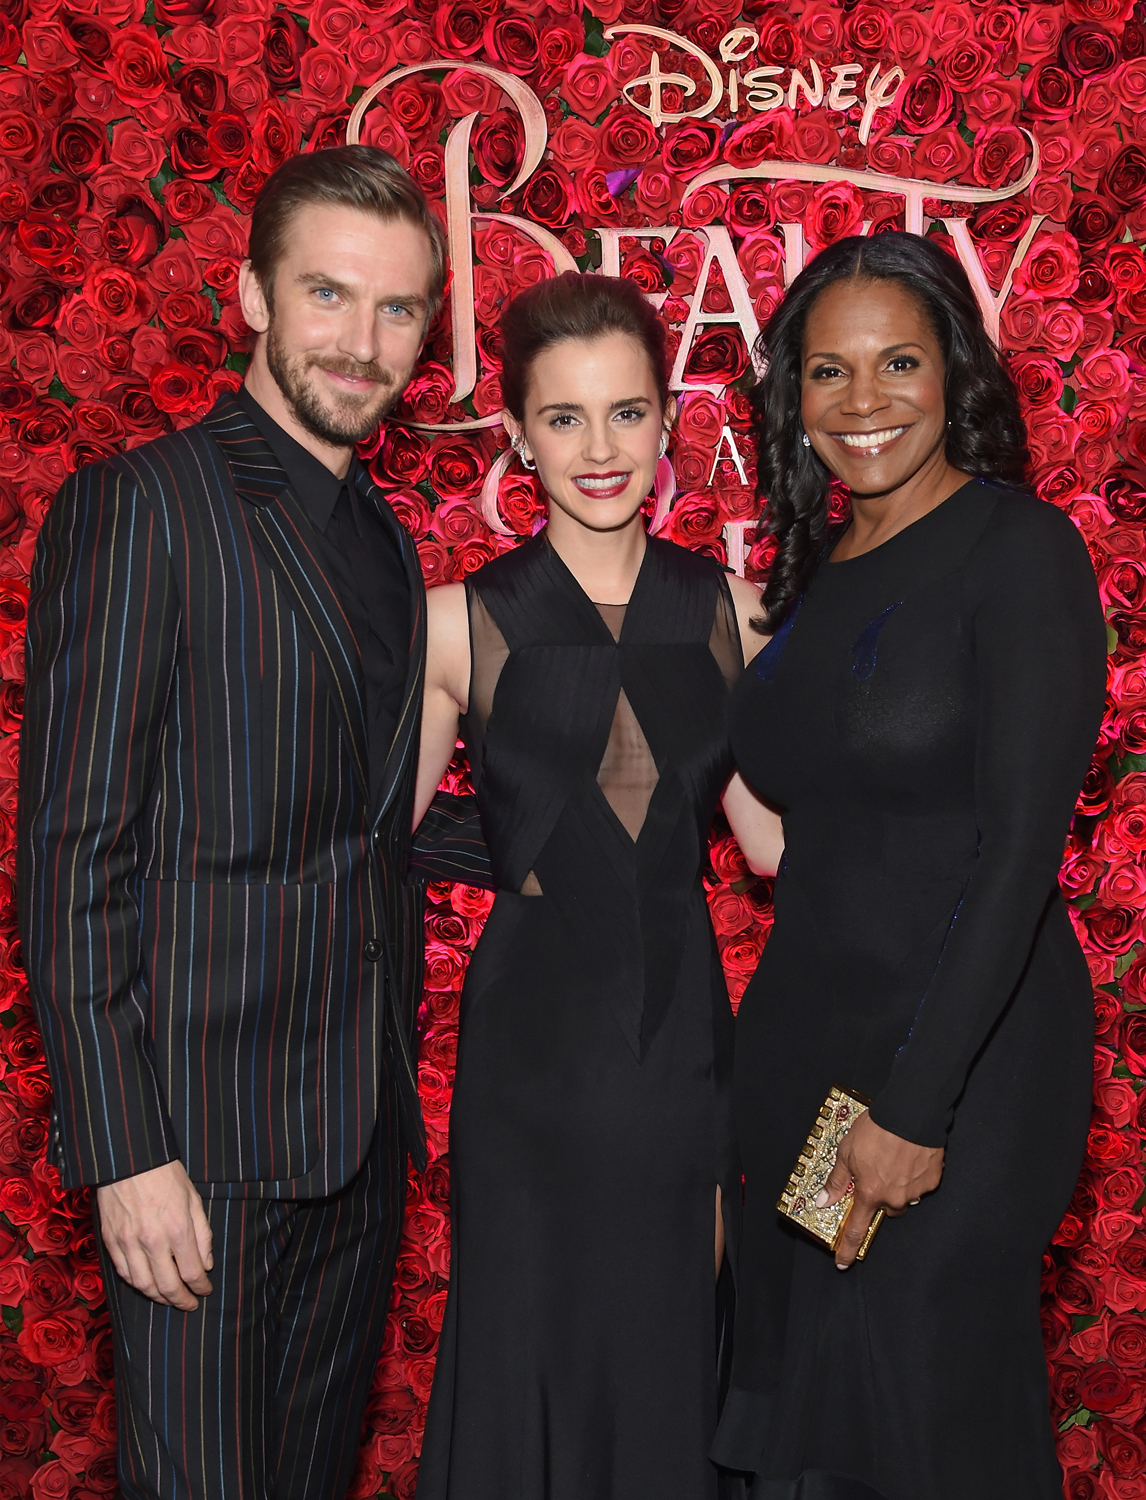 Dan Stevens, Emma Watson and Audra McDonald at the Beauty and the Beast premiere